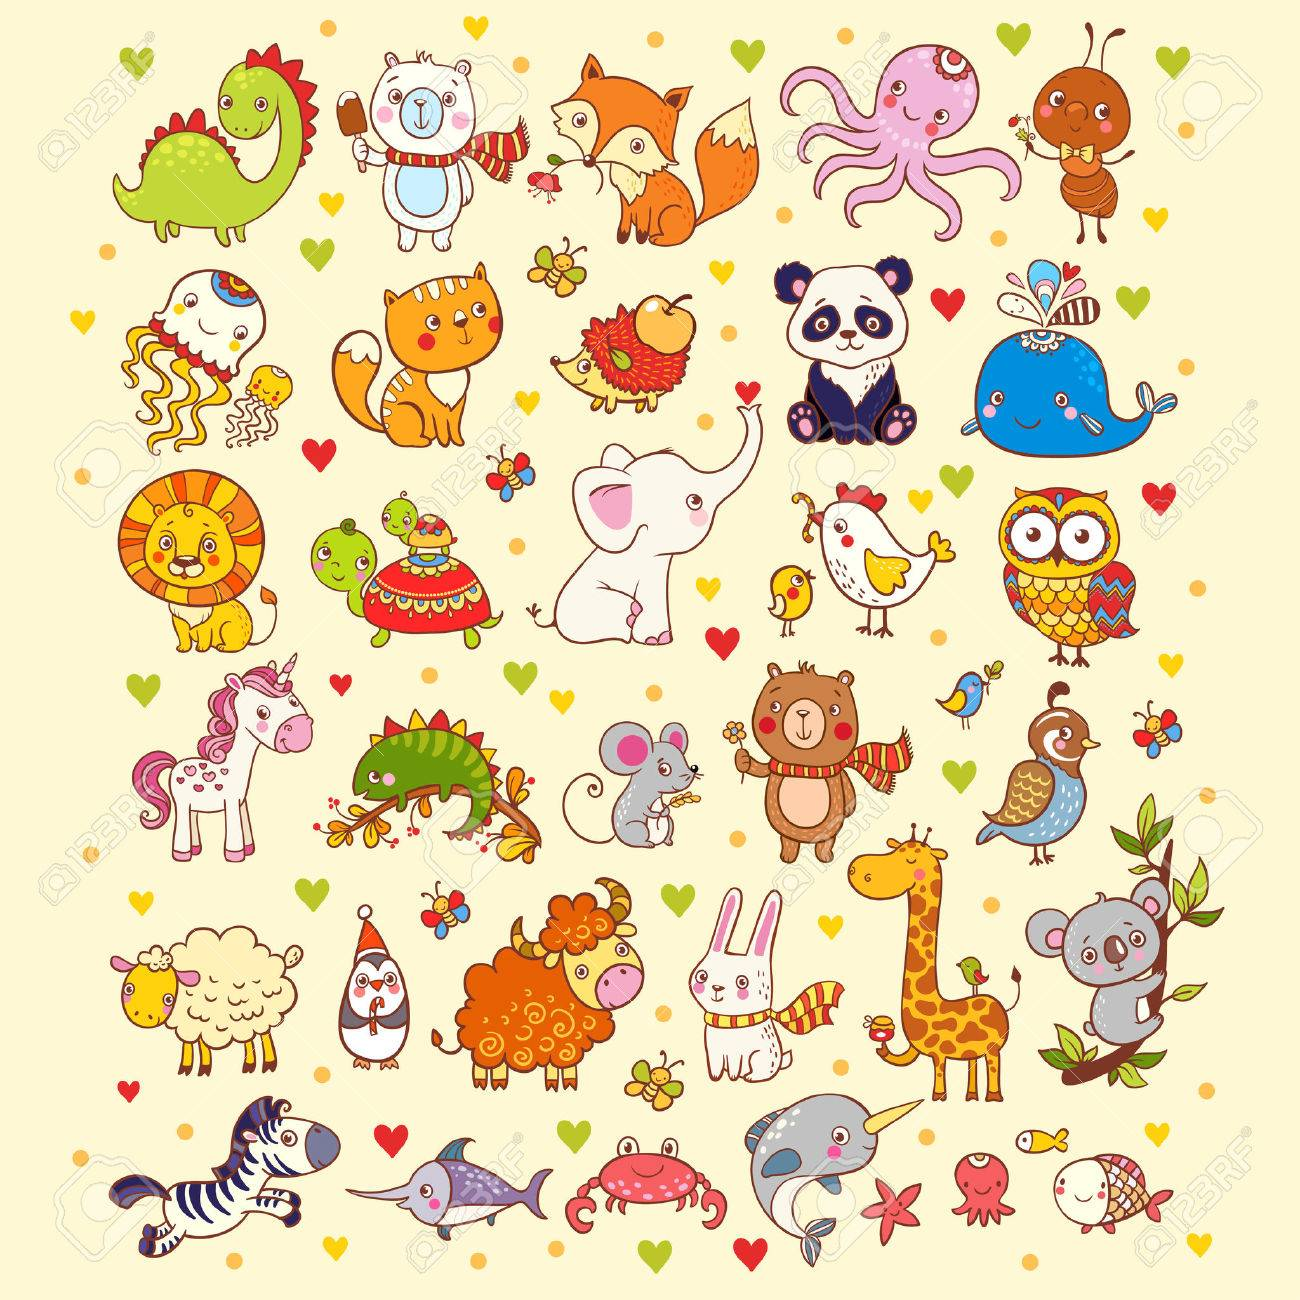 Vector illustration of a set of animals. - 47226875